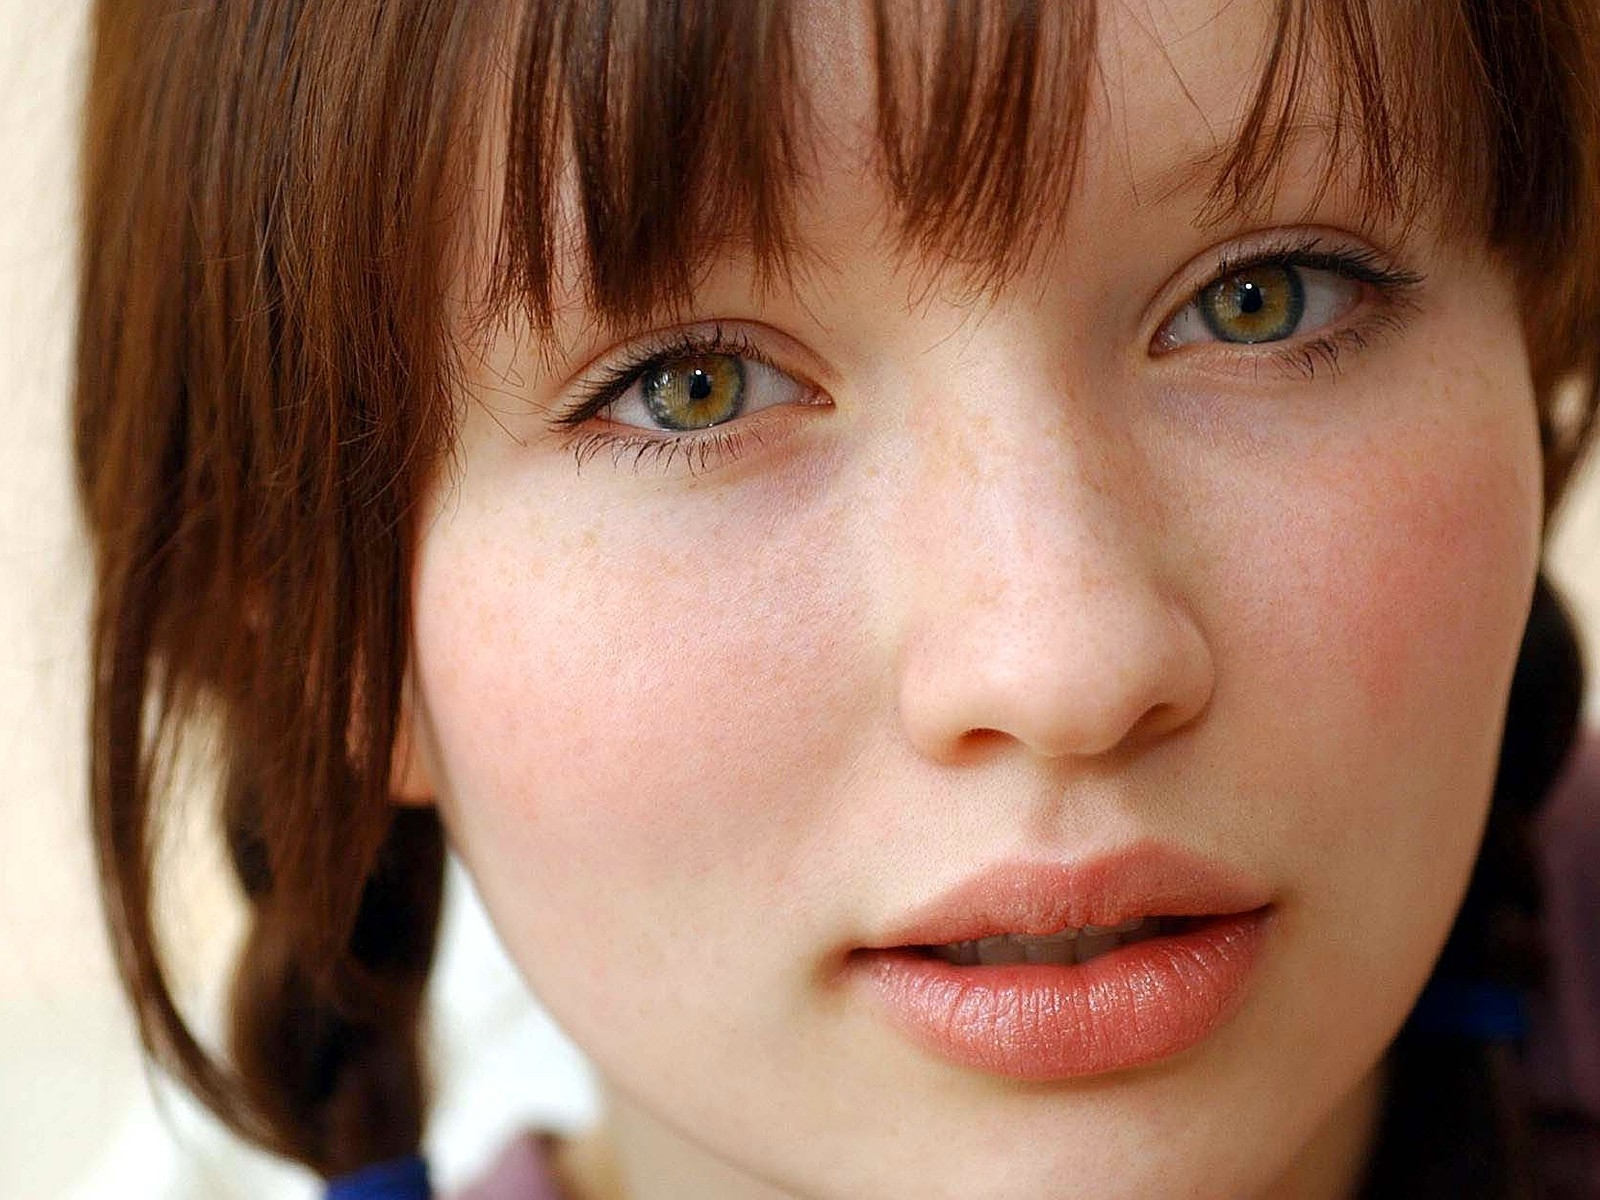 Emily Browning for 1600 x 1200 resolution